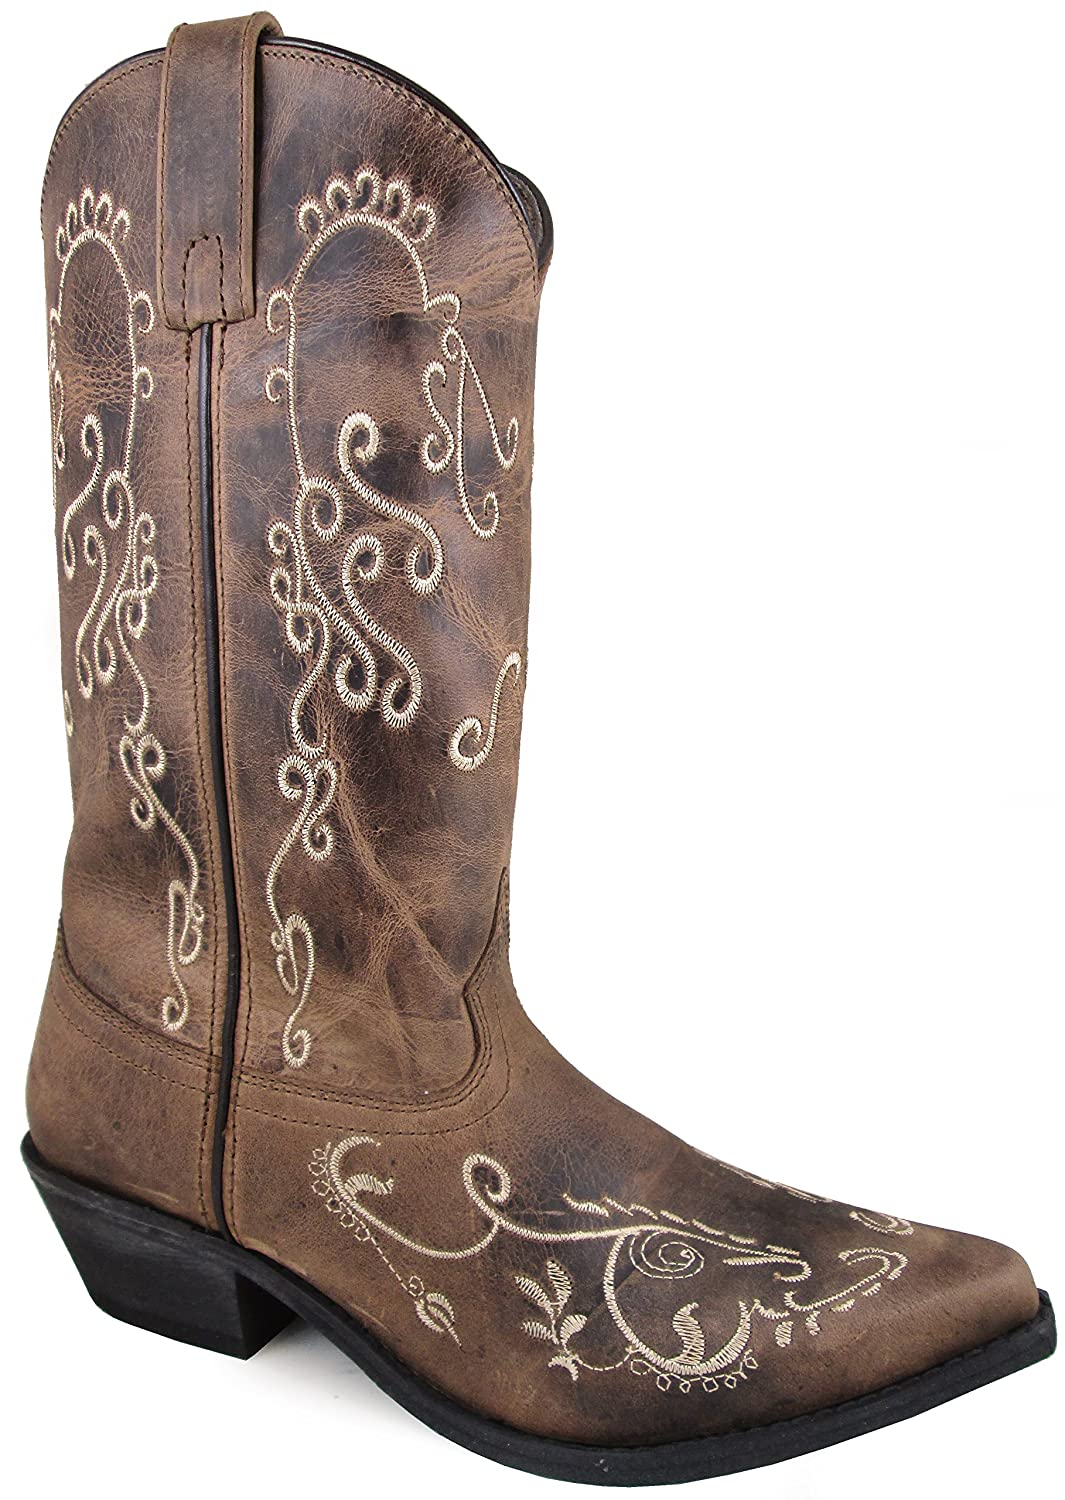 Smoky Mountain Women's Jolene Pull On Embroidered Snip Toe Brown Waxed Distress Boots B072MS5LPM 5.5 B(M) US